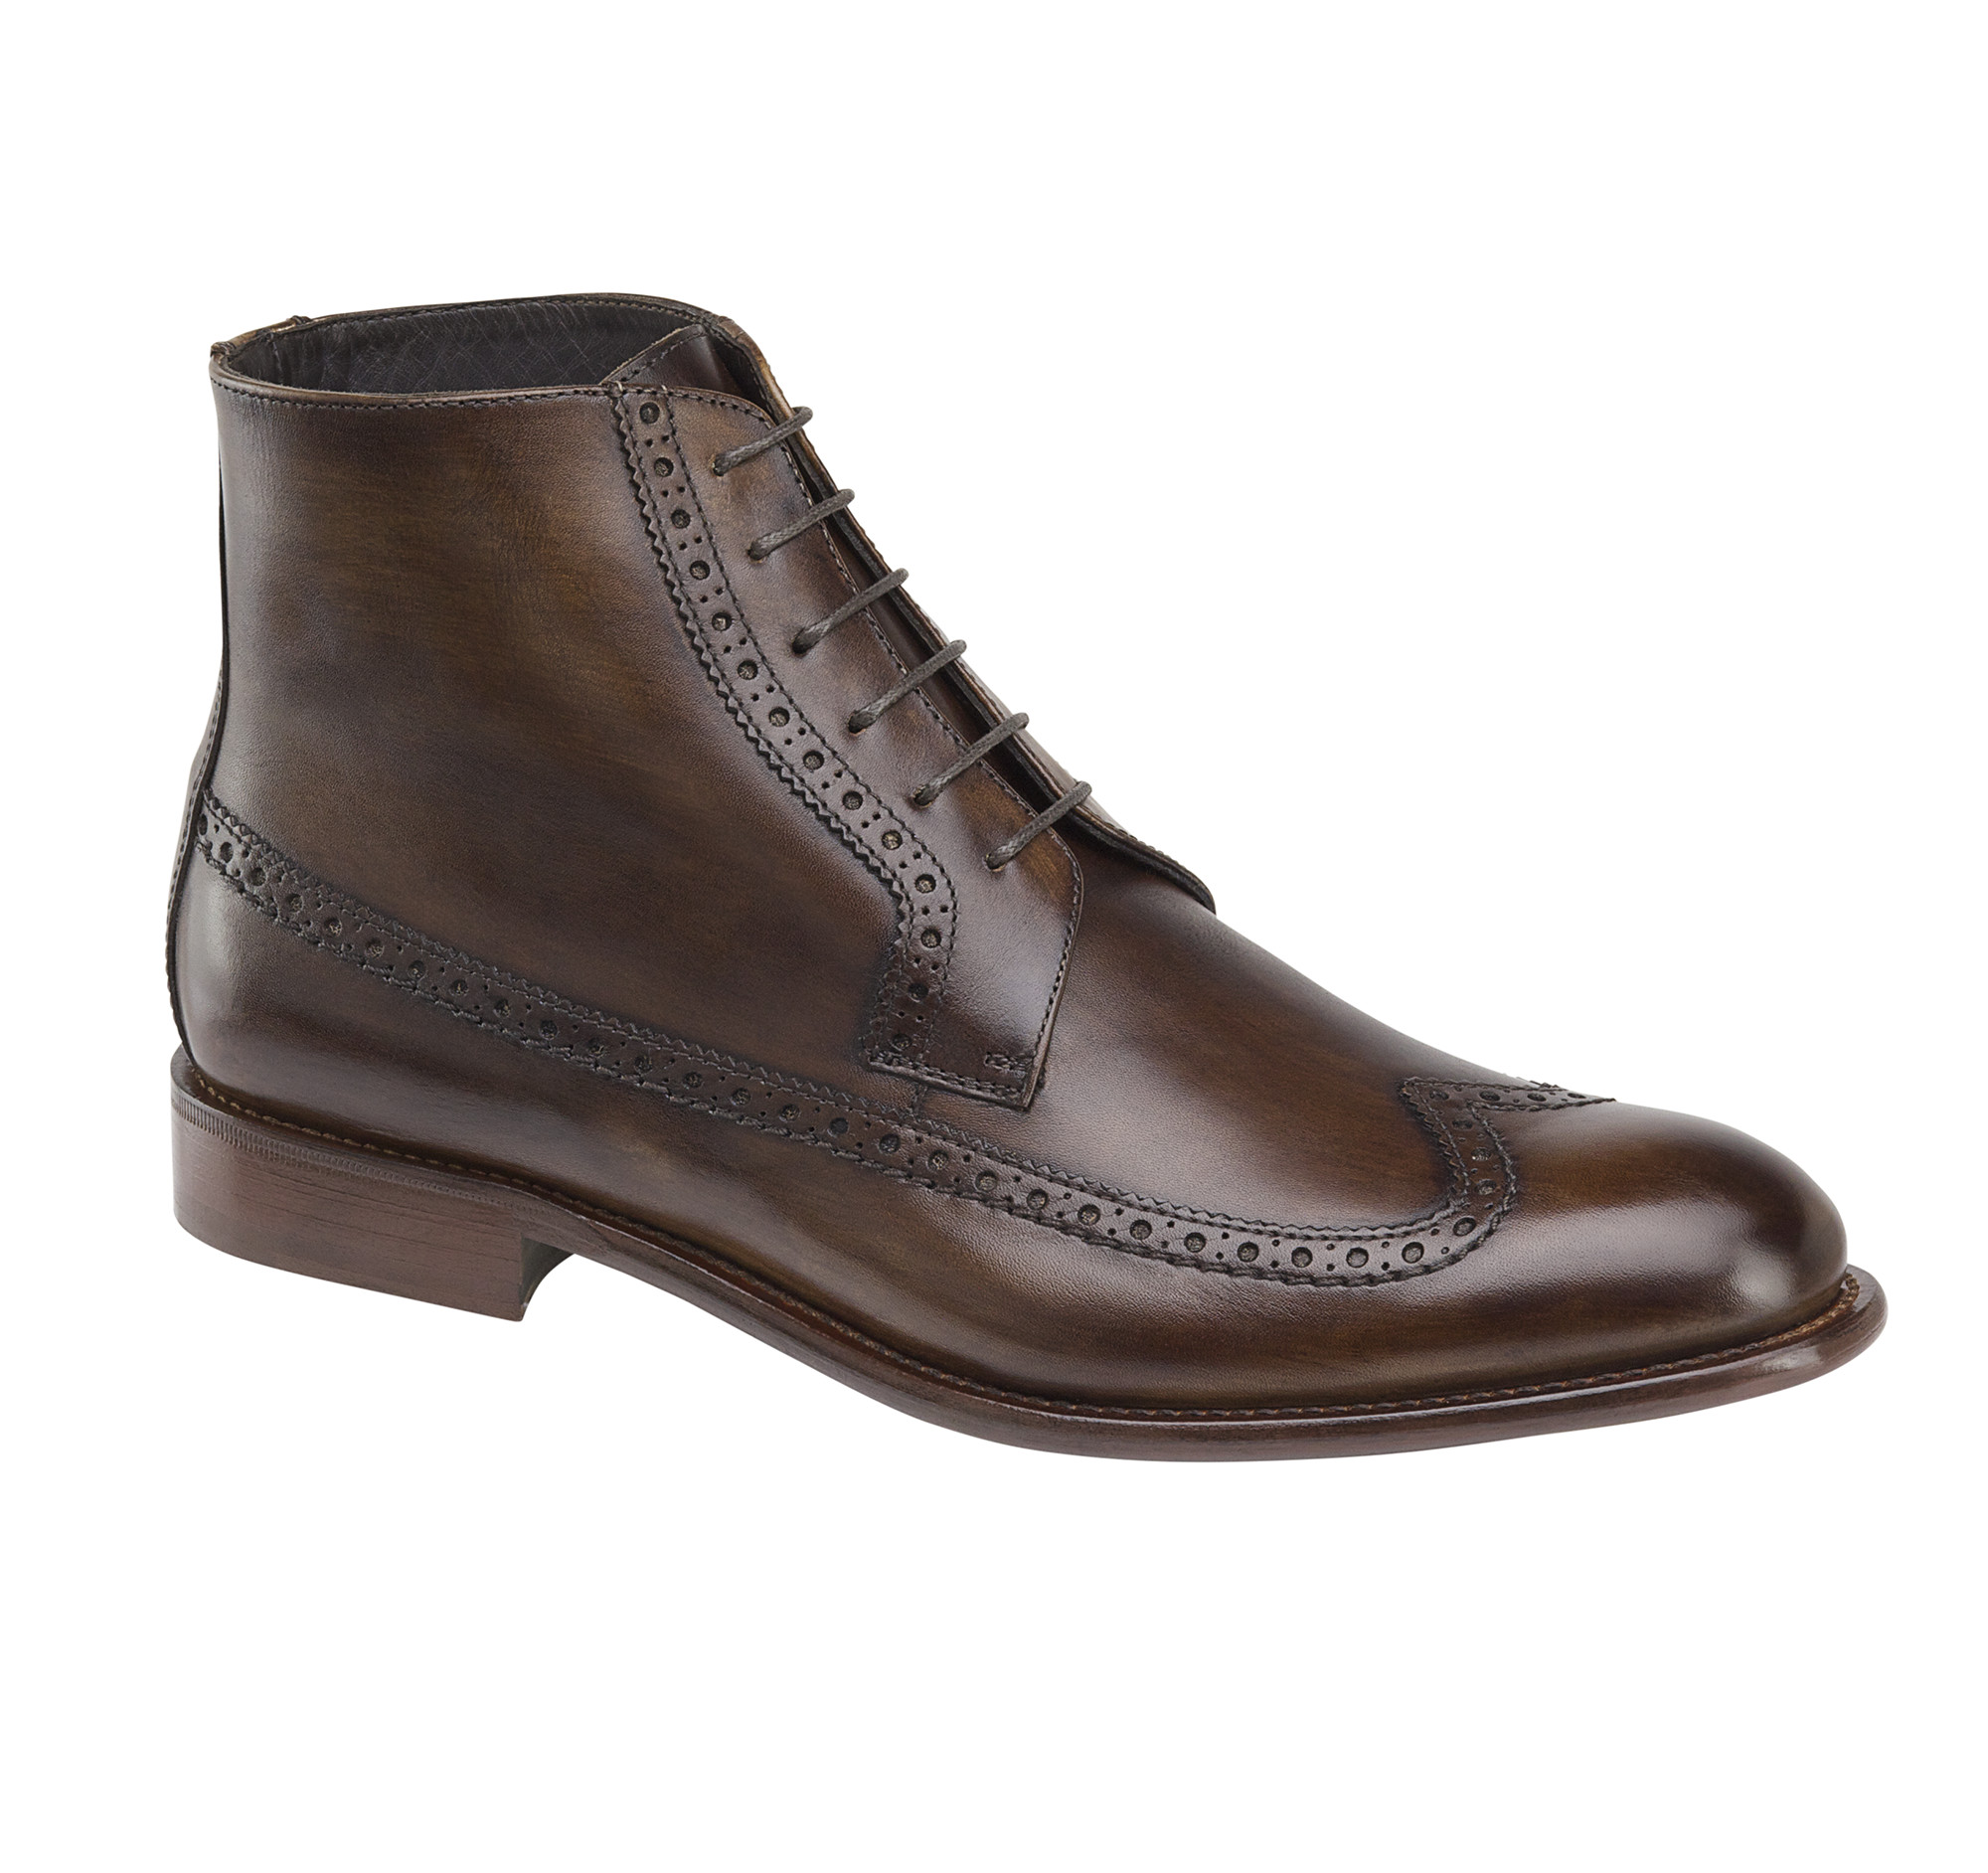 Thursday Boot Company Review – Brown Wingtip Boots After 6 Months